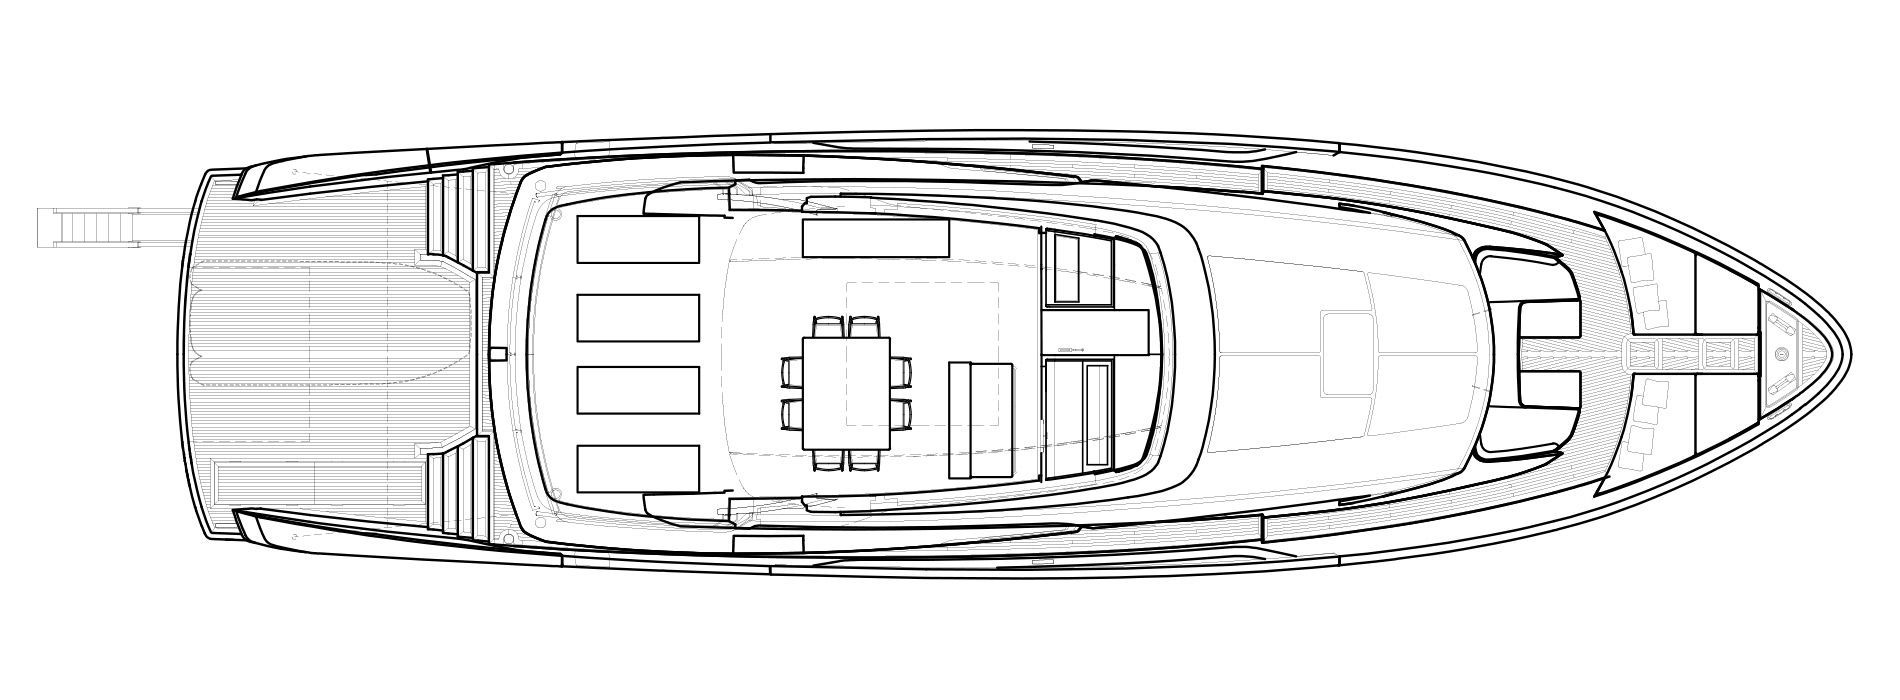 Sanlorenzo Yachts SX88 Flying bridge Version B